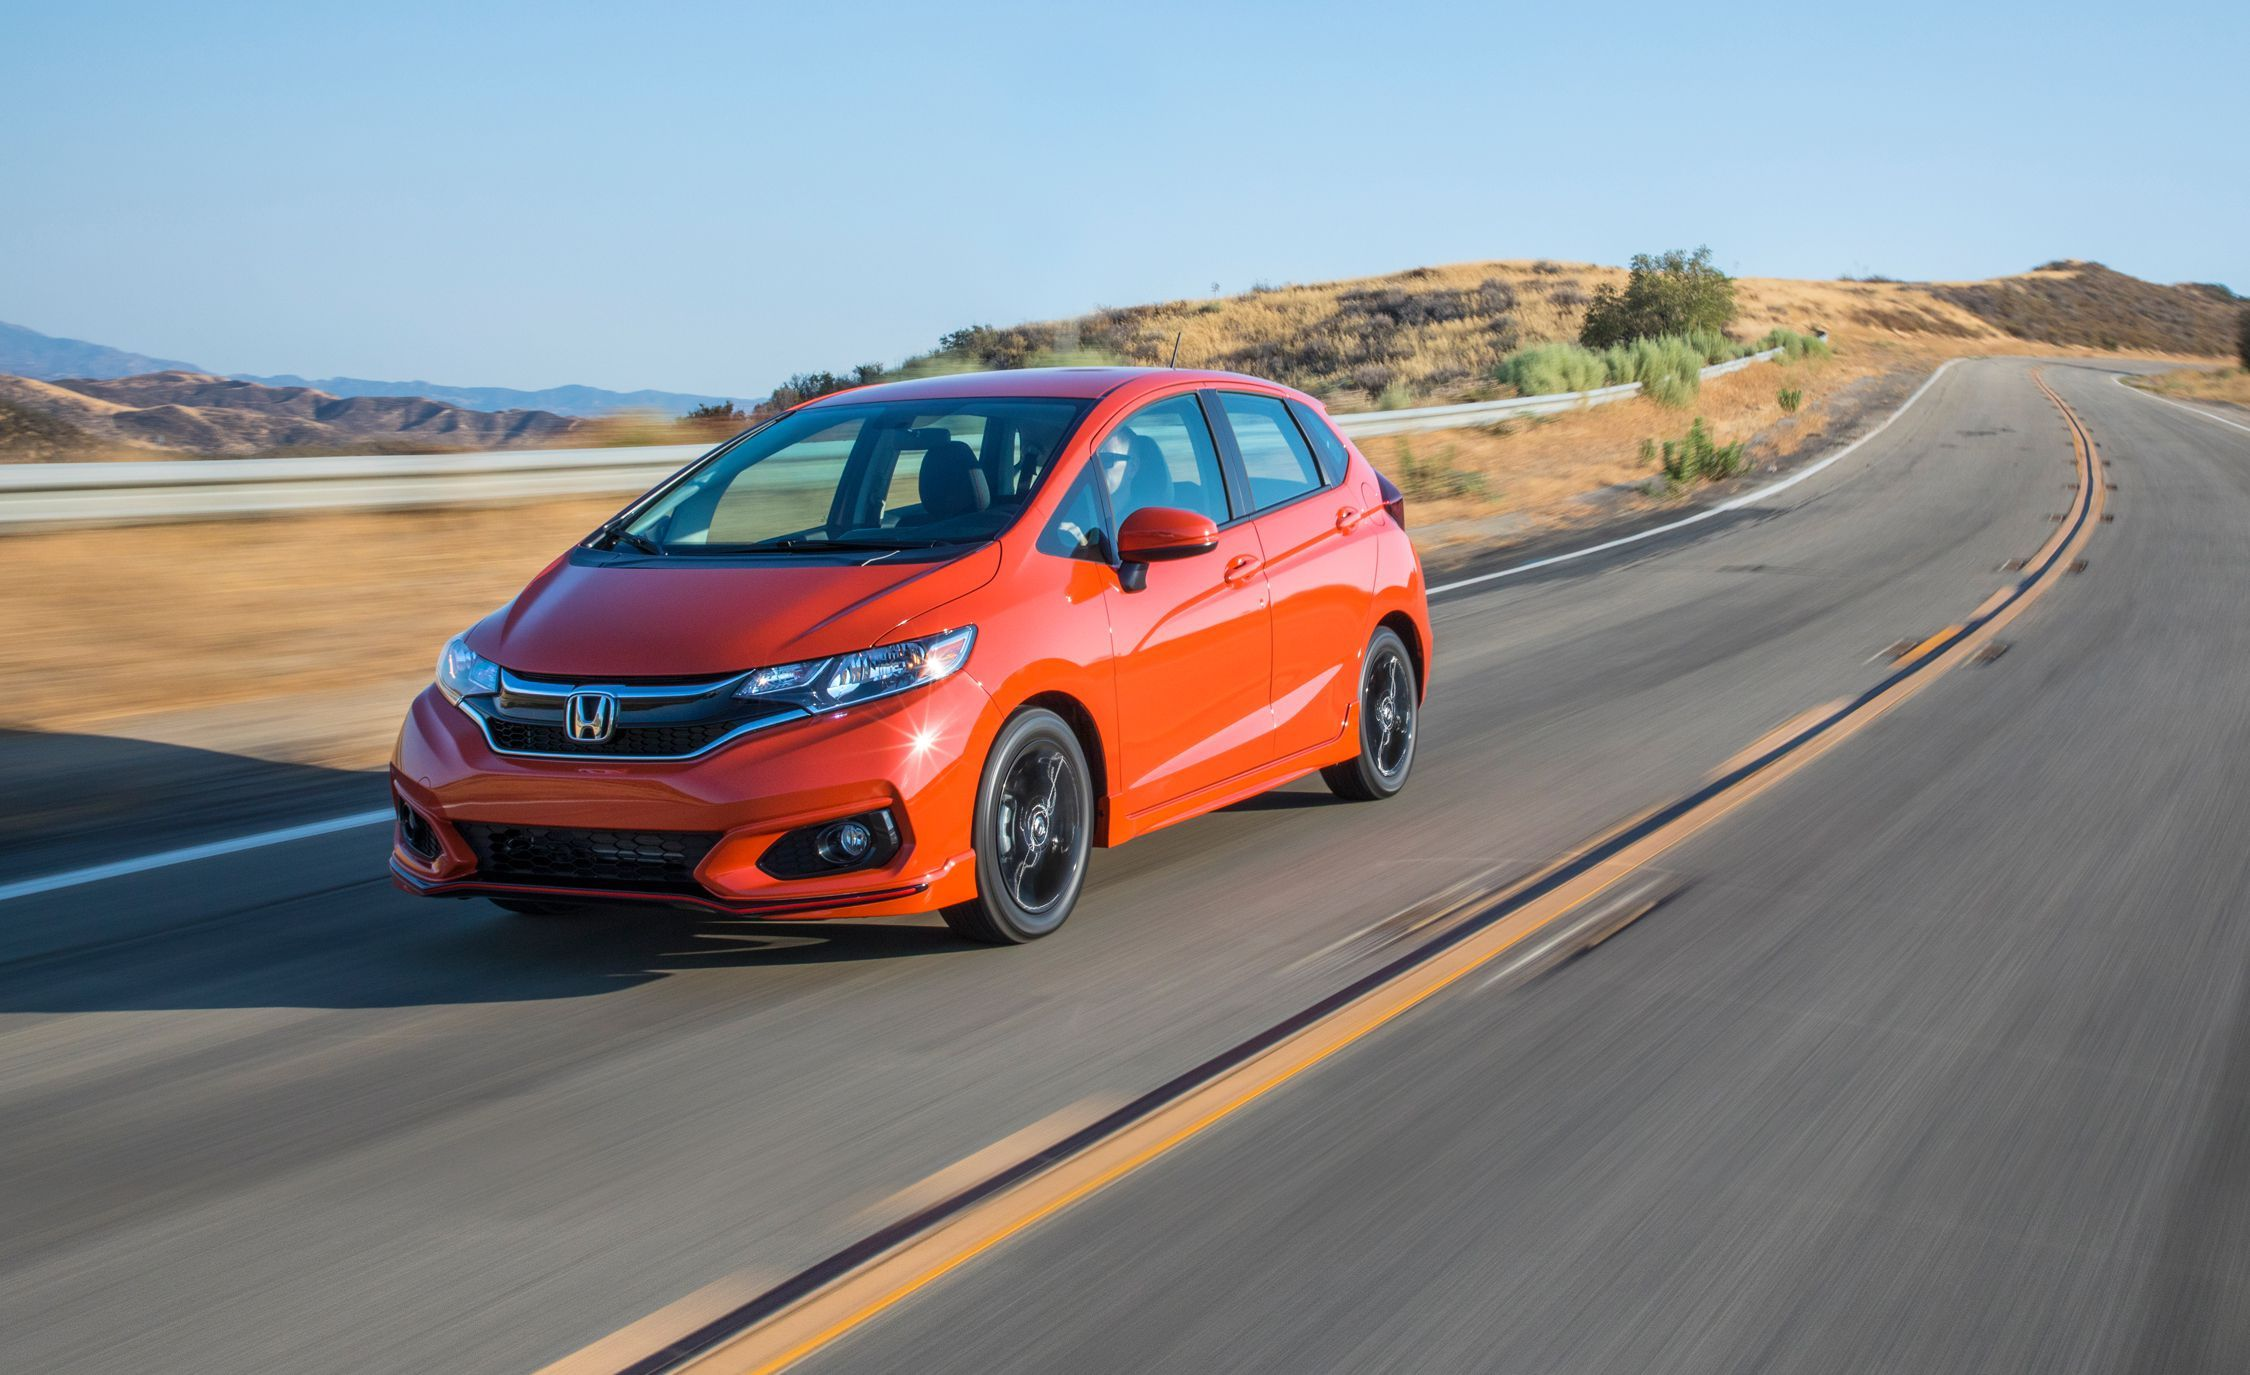 The High Ranking 2018 Honda Fit Has A Roomy Versatile Cabin With